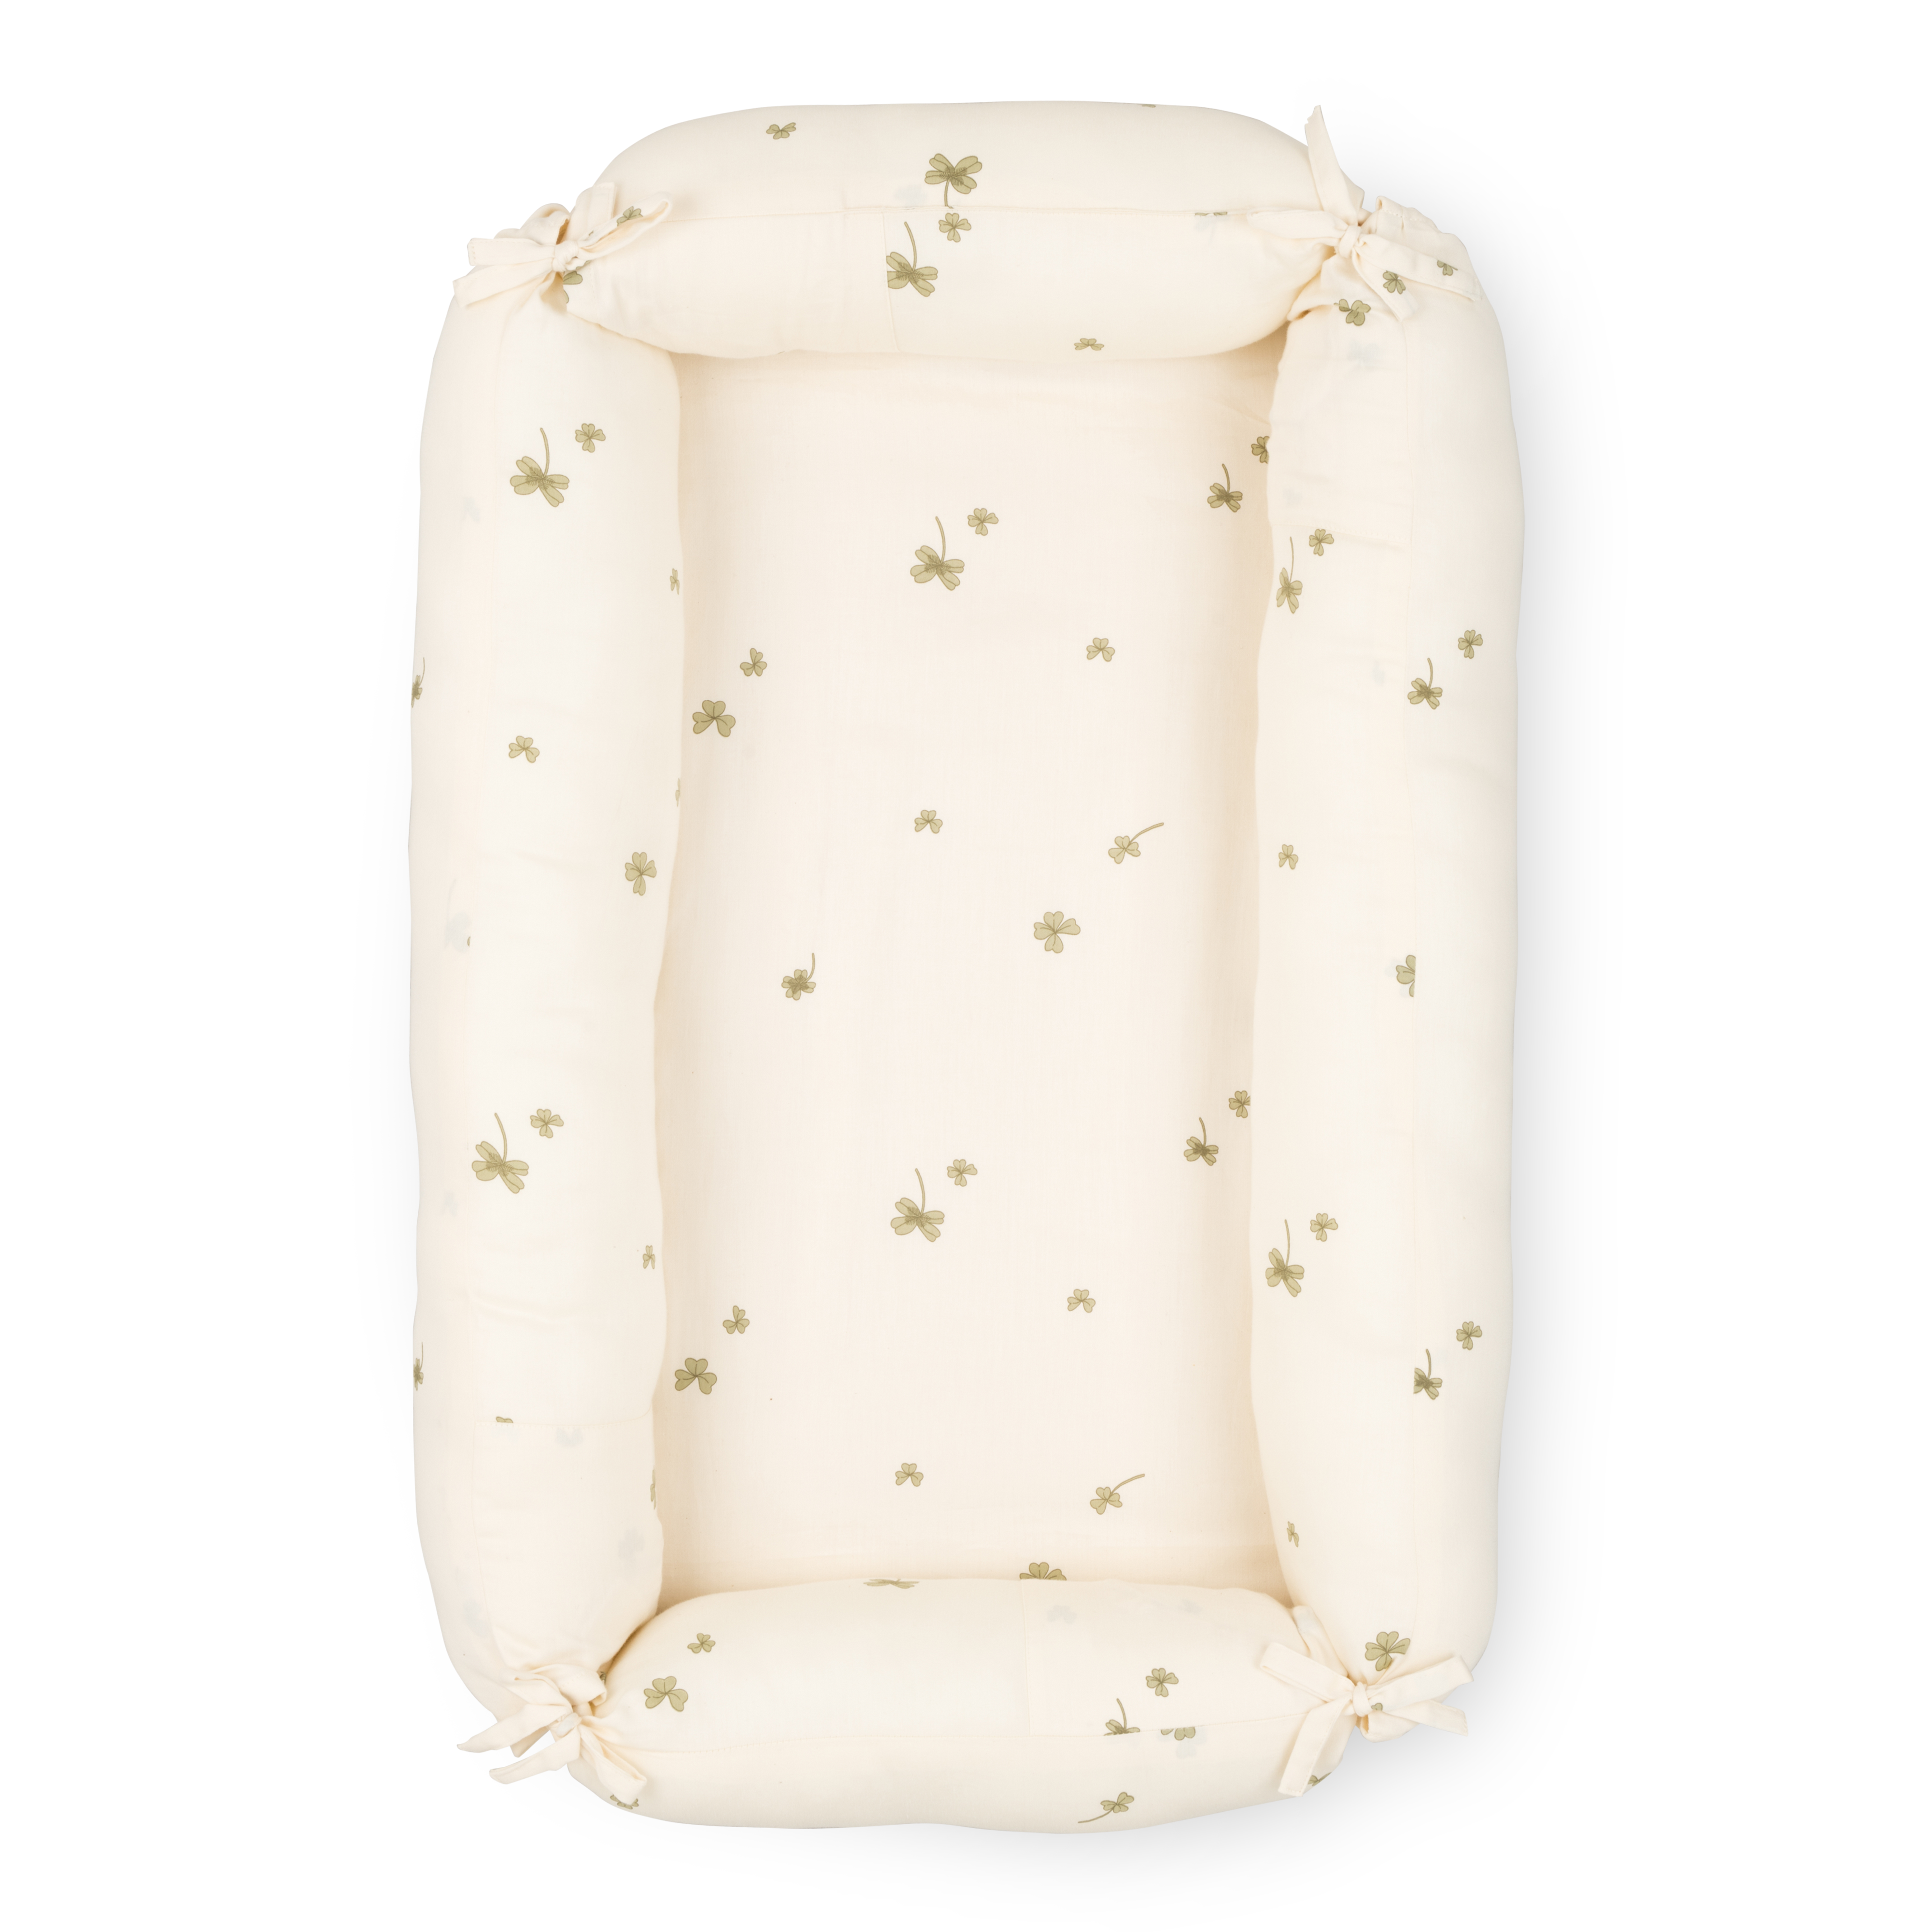 Image of Thats mine babynest - Clover meadow (43600902)